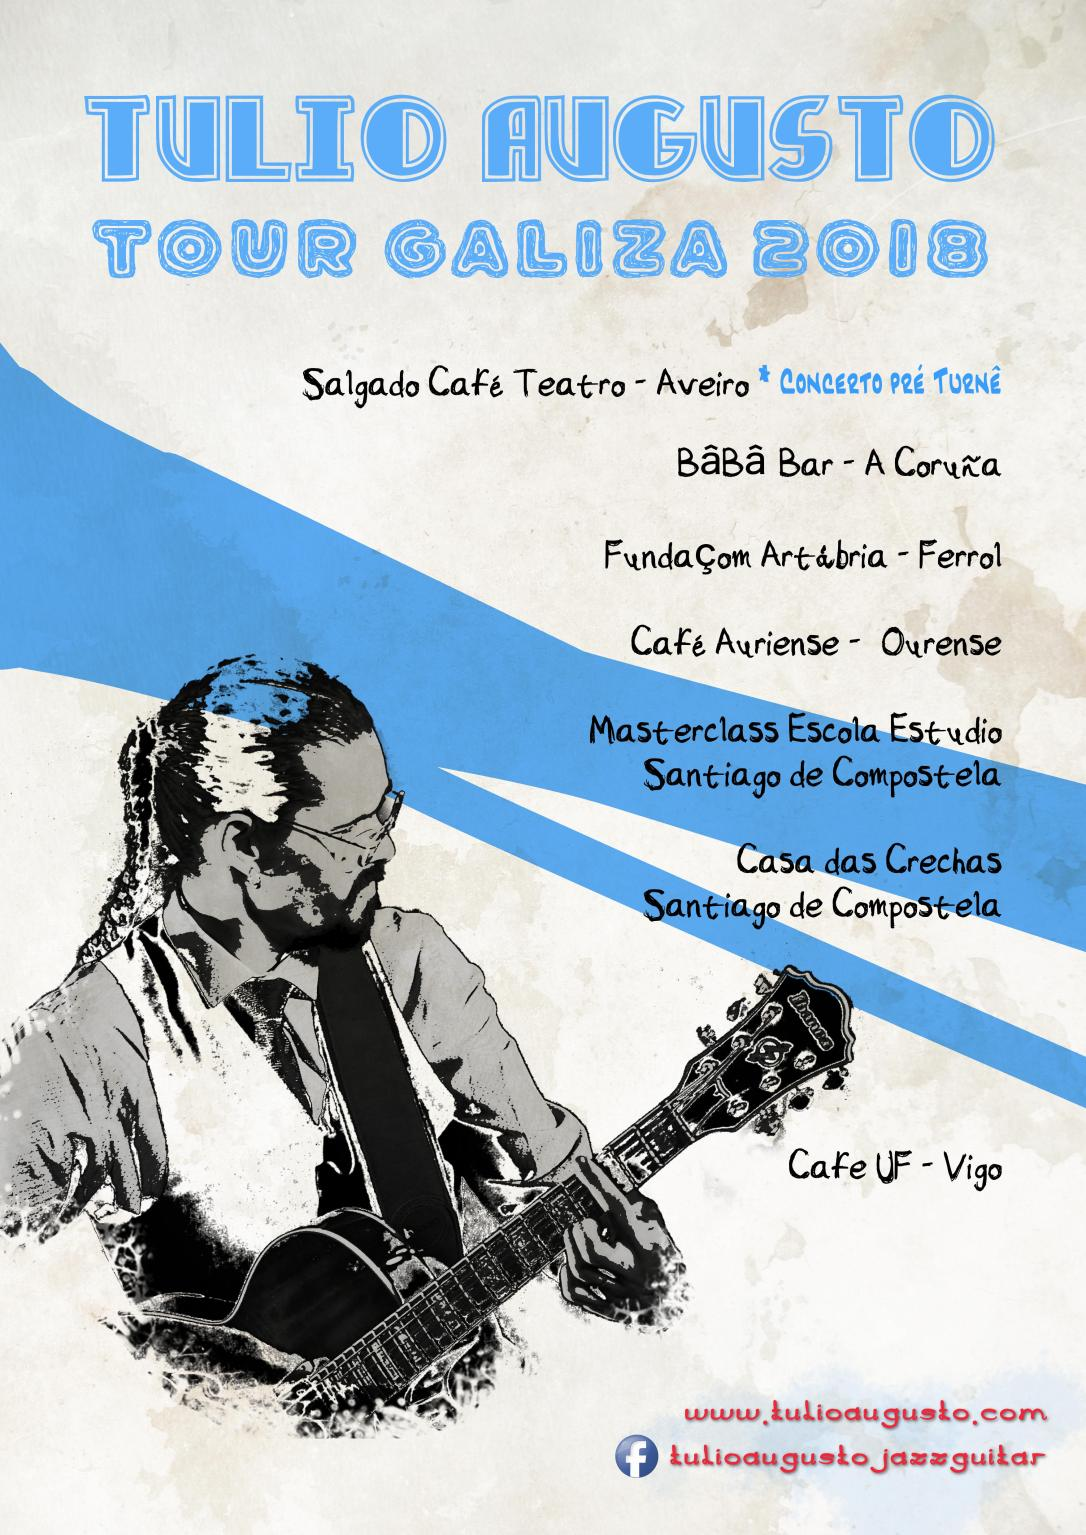 Cartaz Tour galiza_sem datas_Tulio Augusto_guitar_jazz_blues.jpg